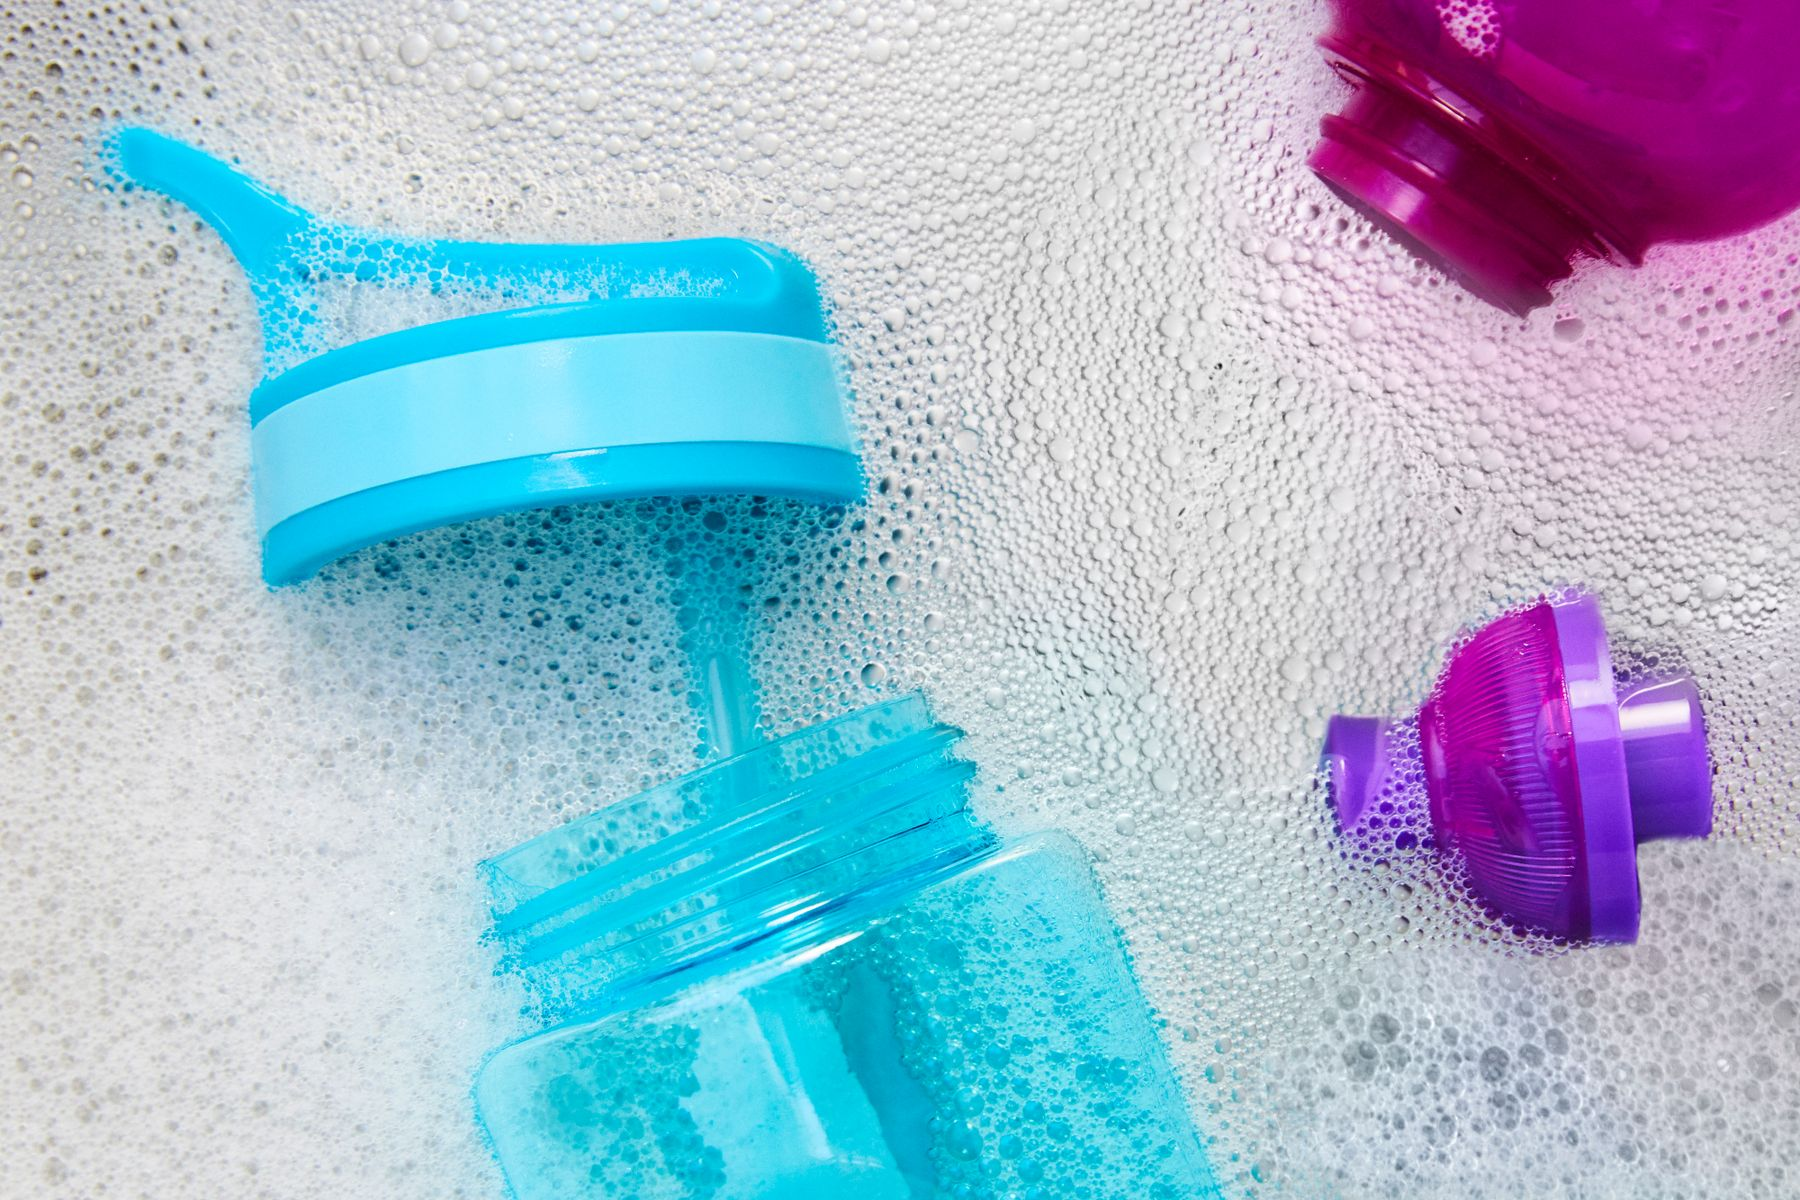 a turquoise and a purple reusable water bottle in soapy water